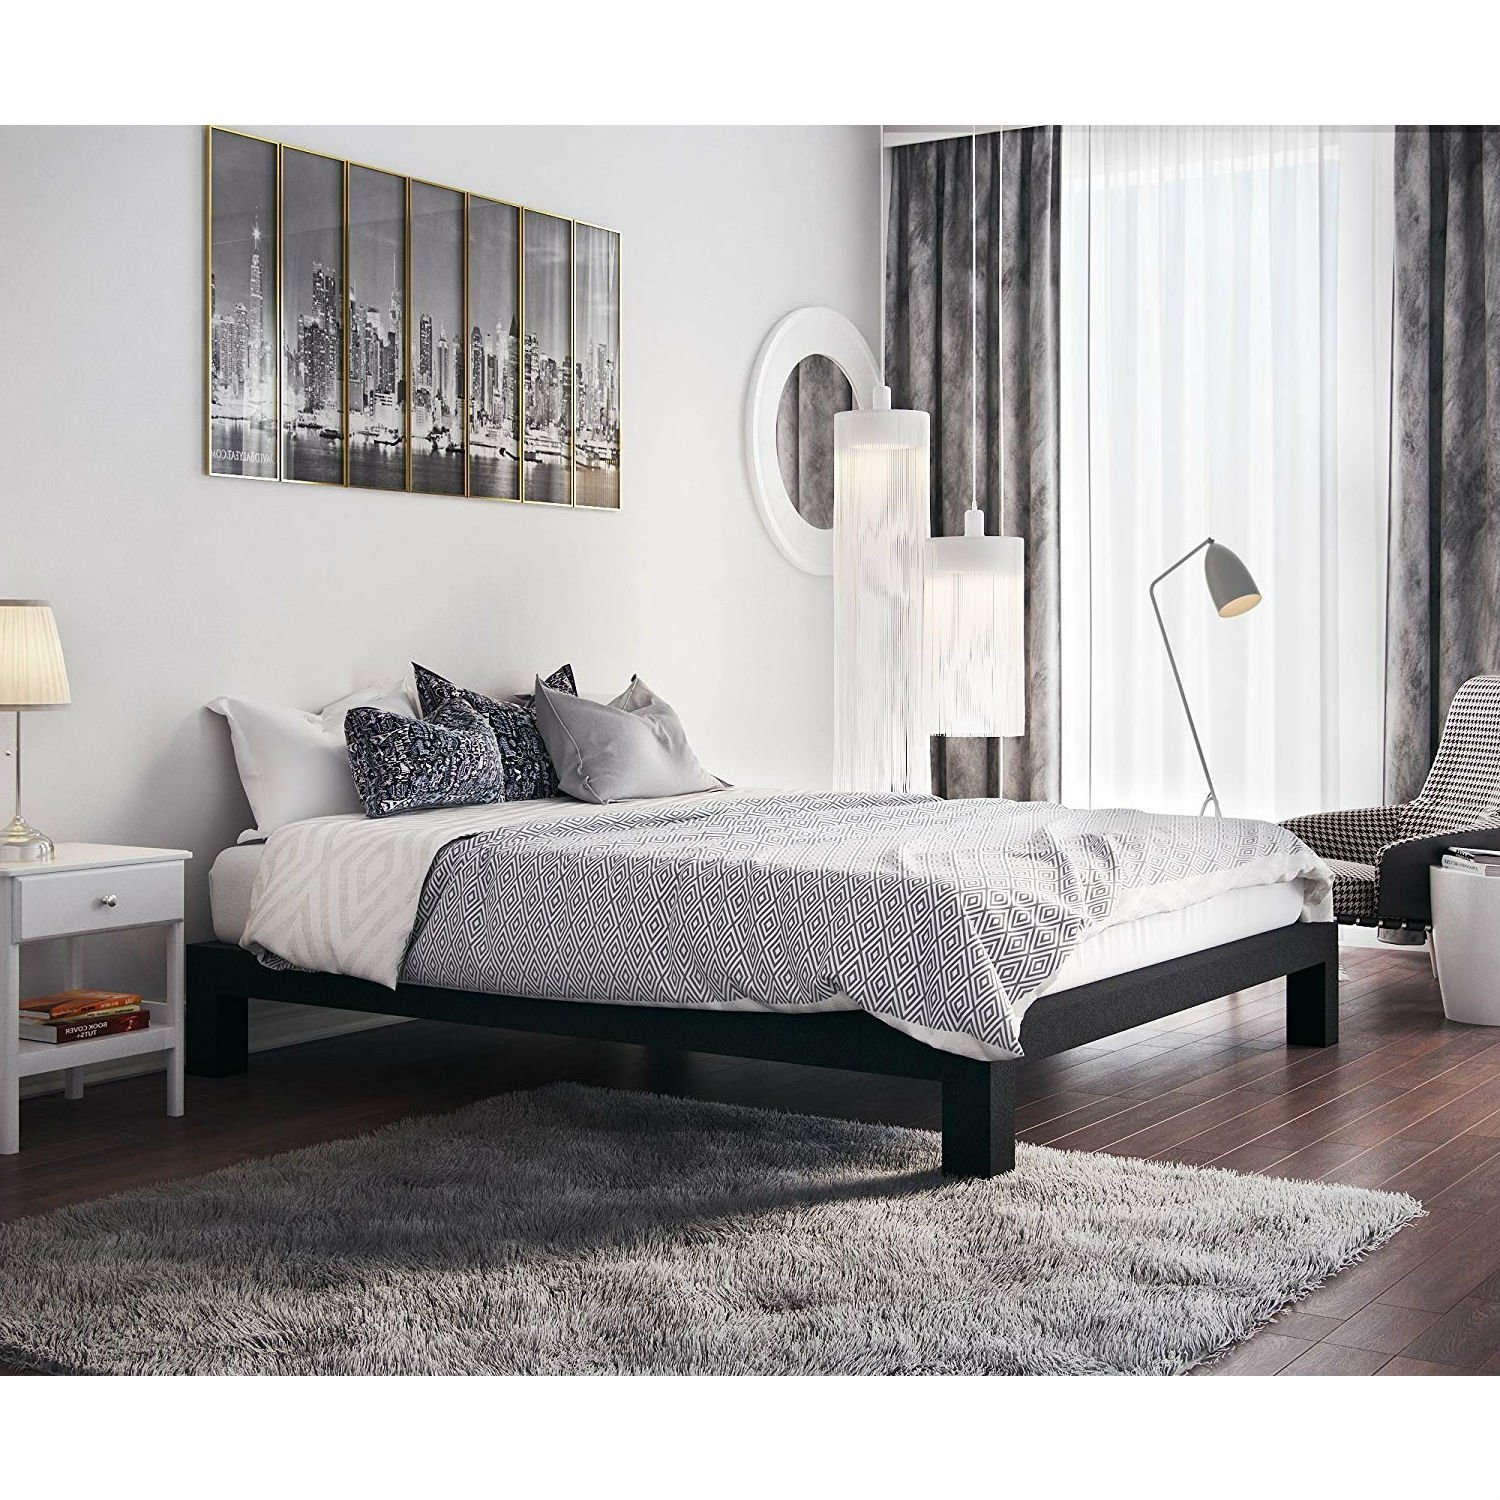 King Black Metal Platform Bed Frame With Wide Wood Slats Metal